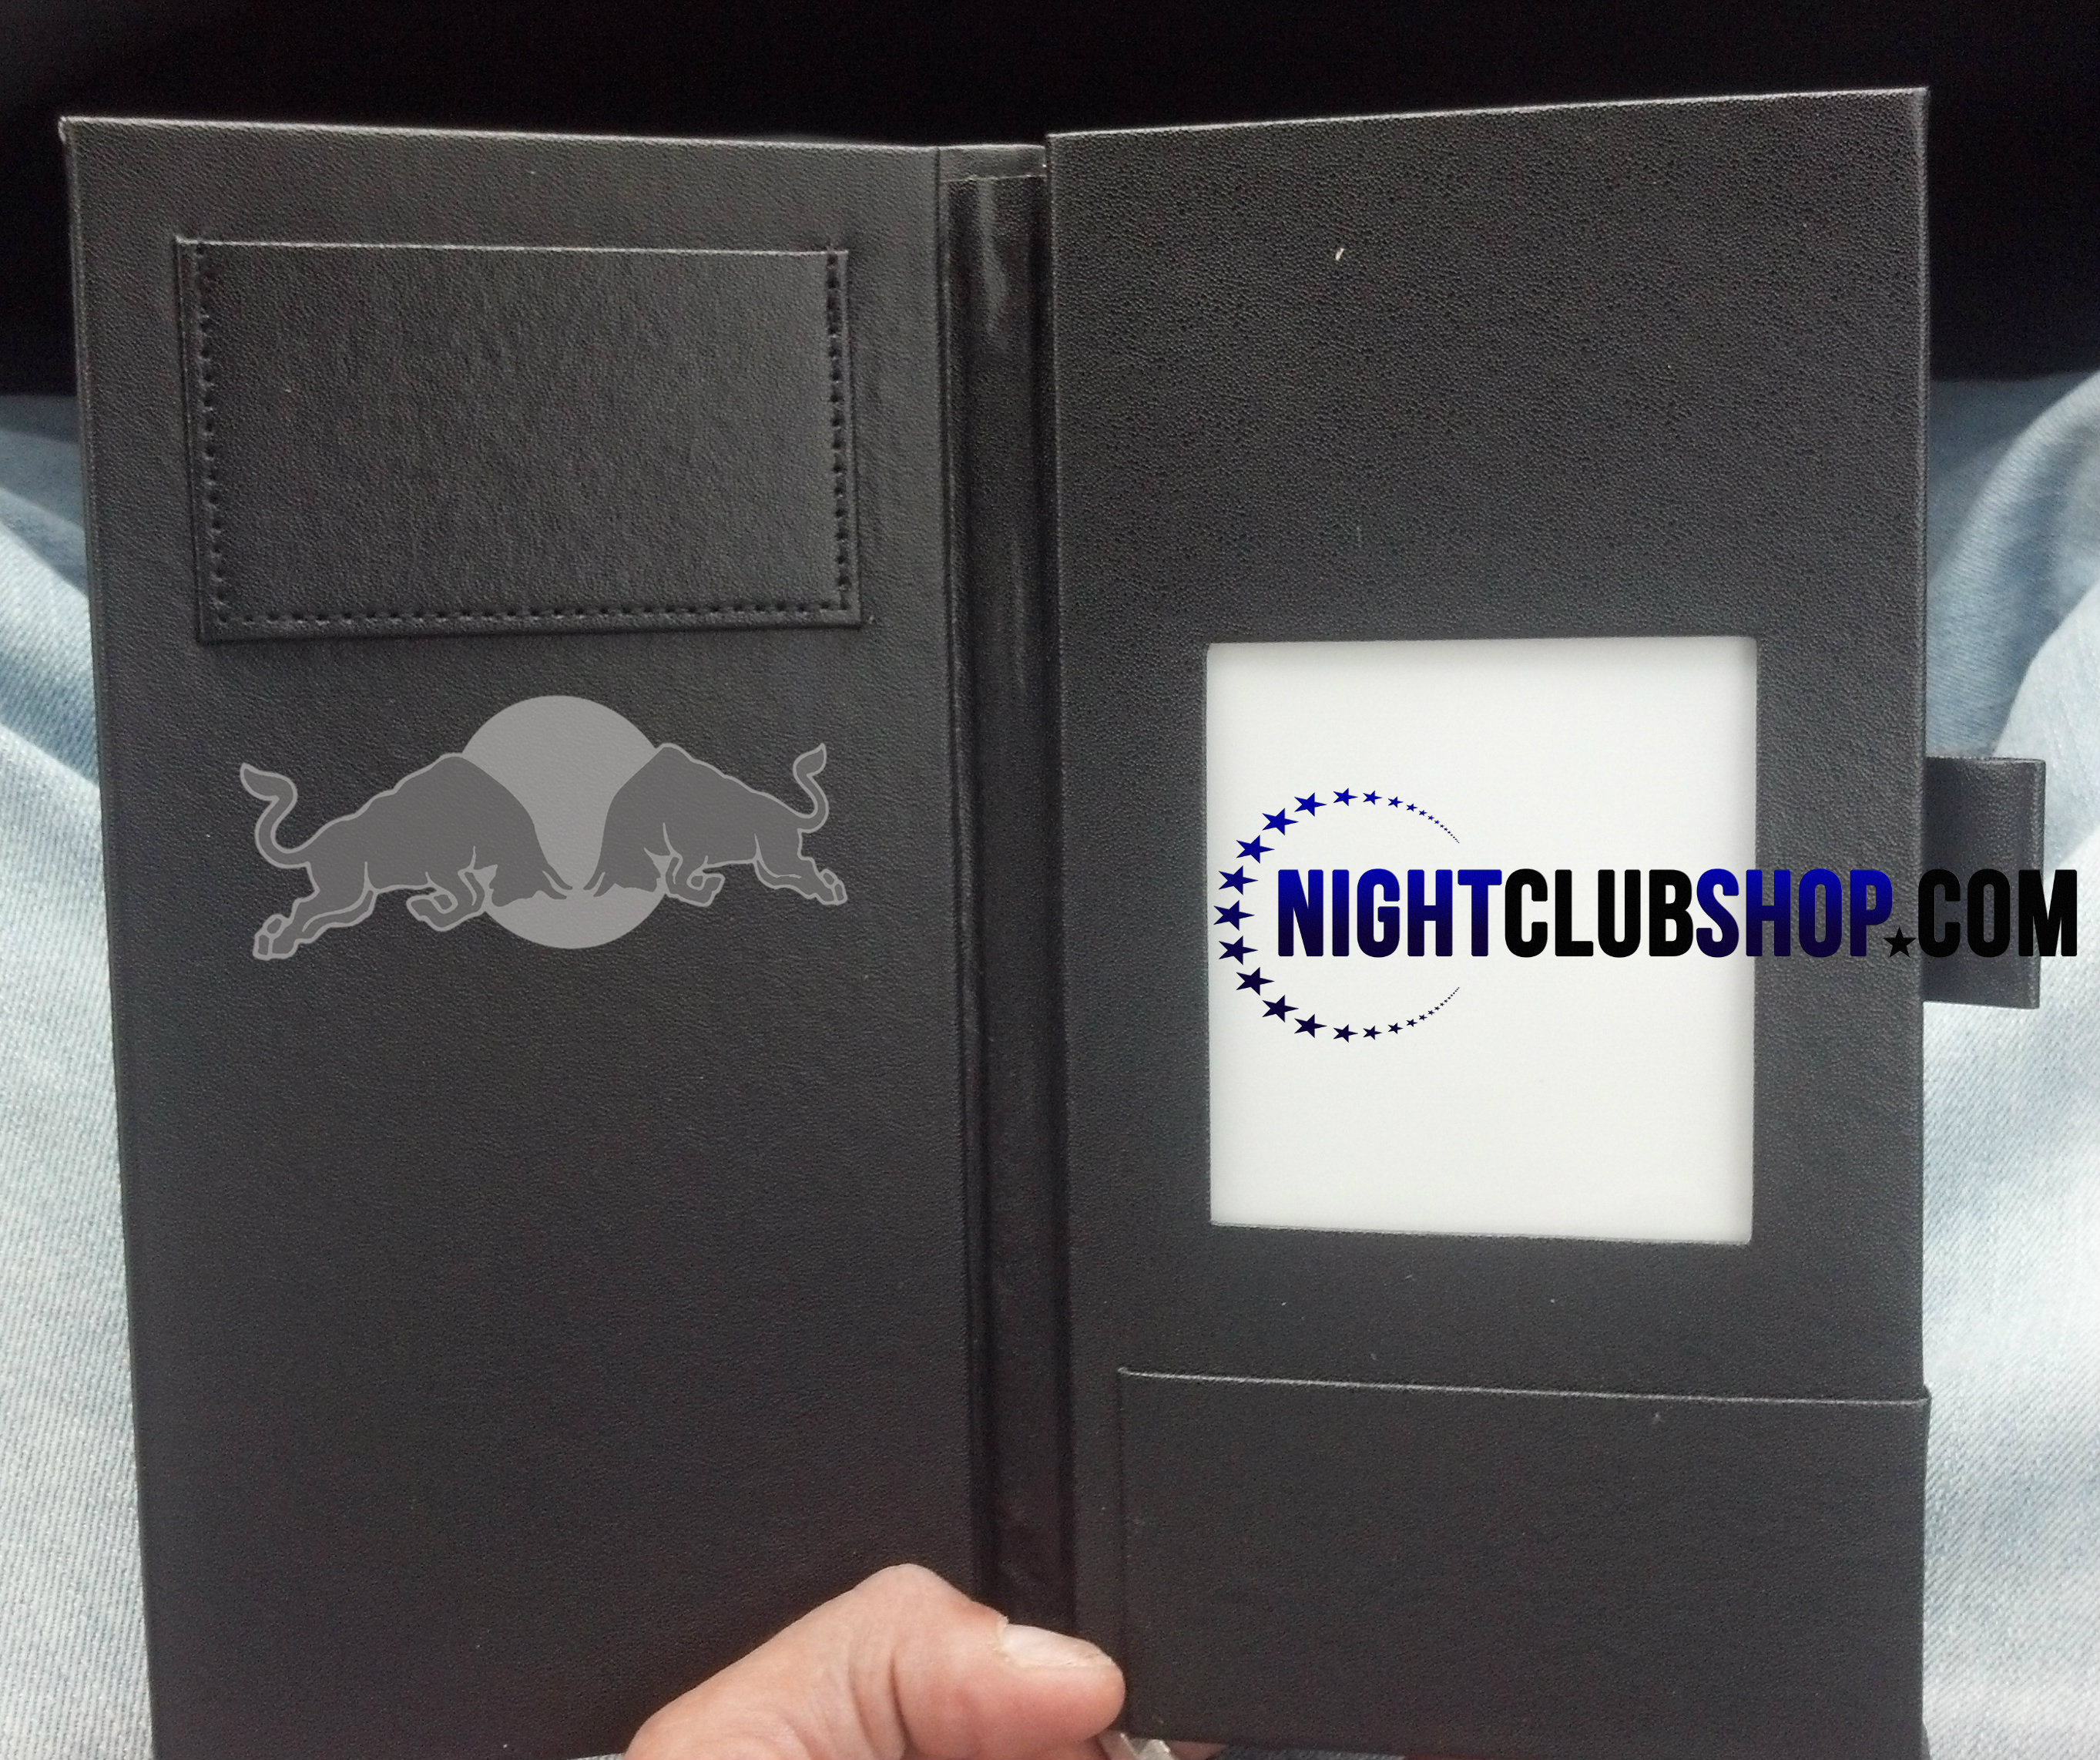 led-menu-custom-red-bull.jpg